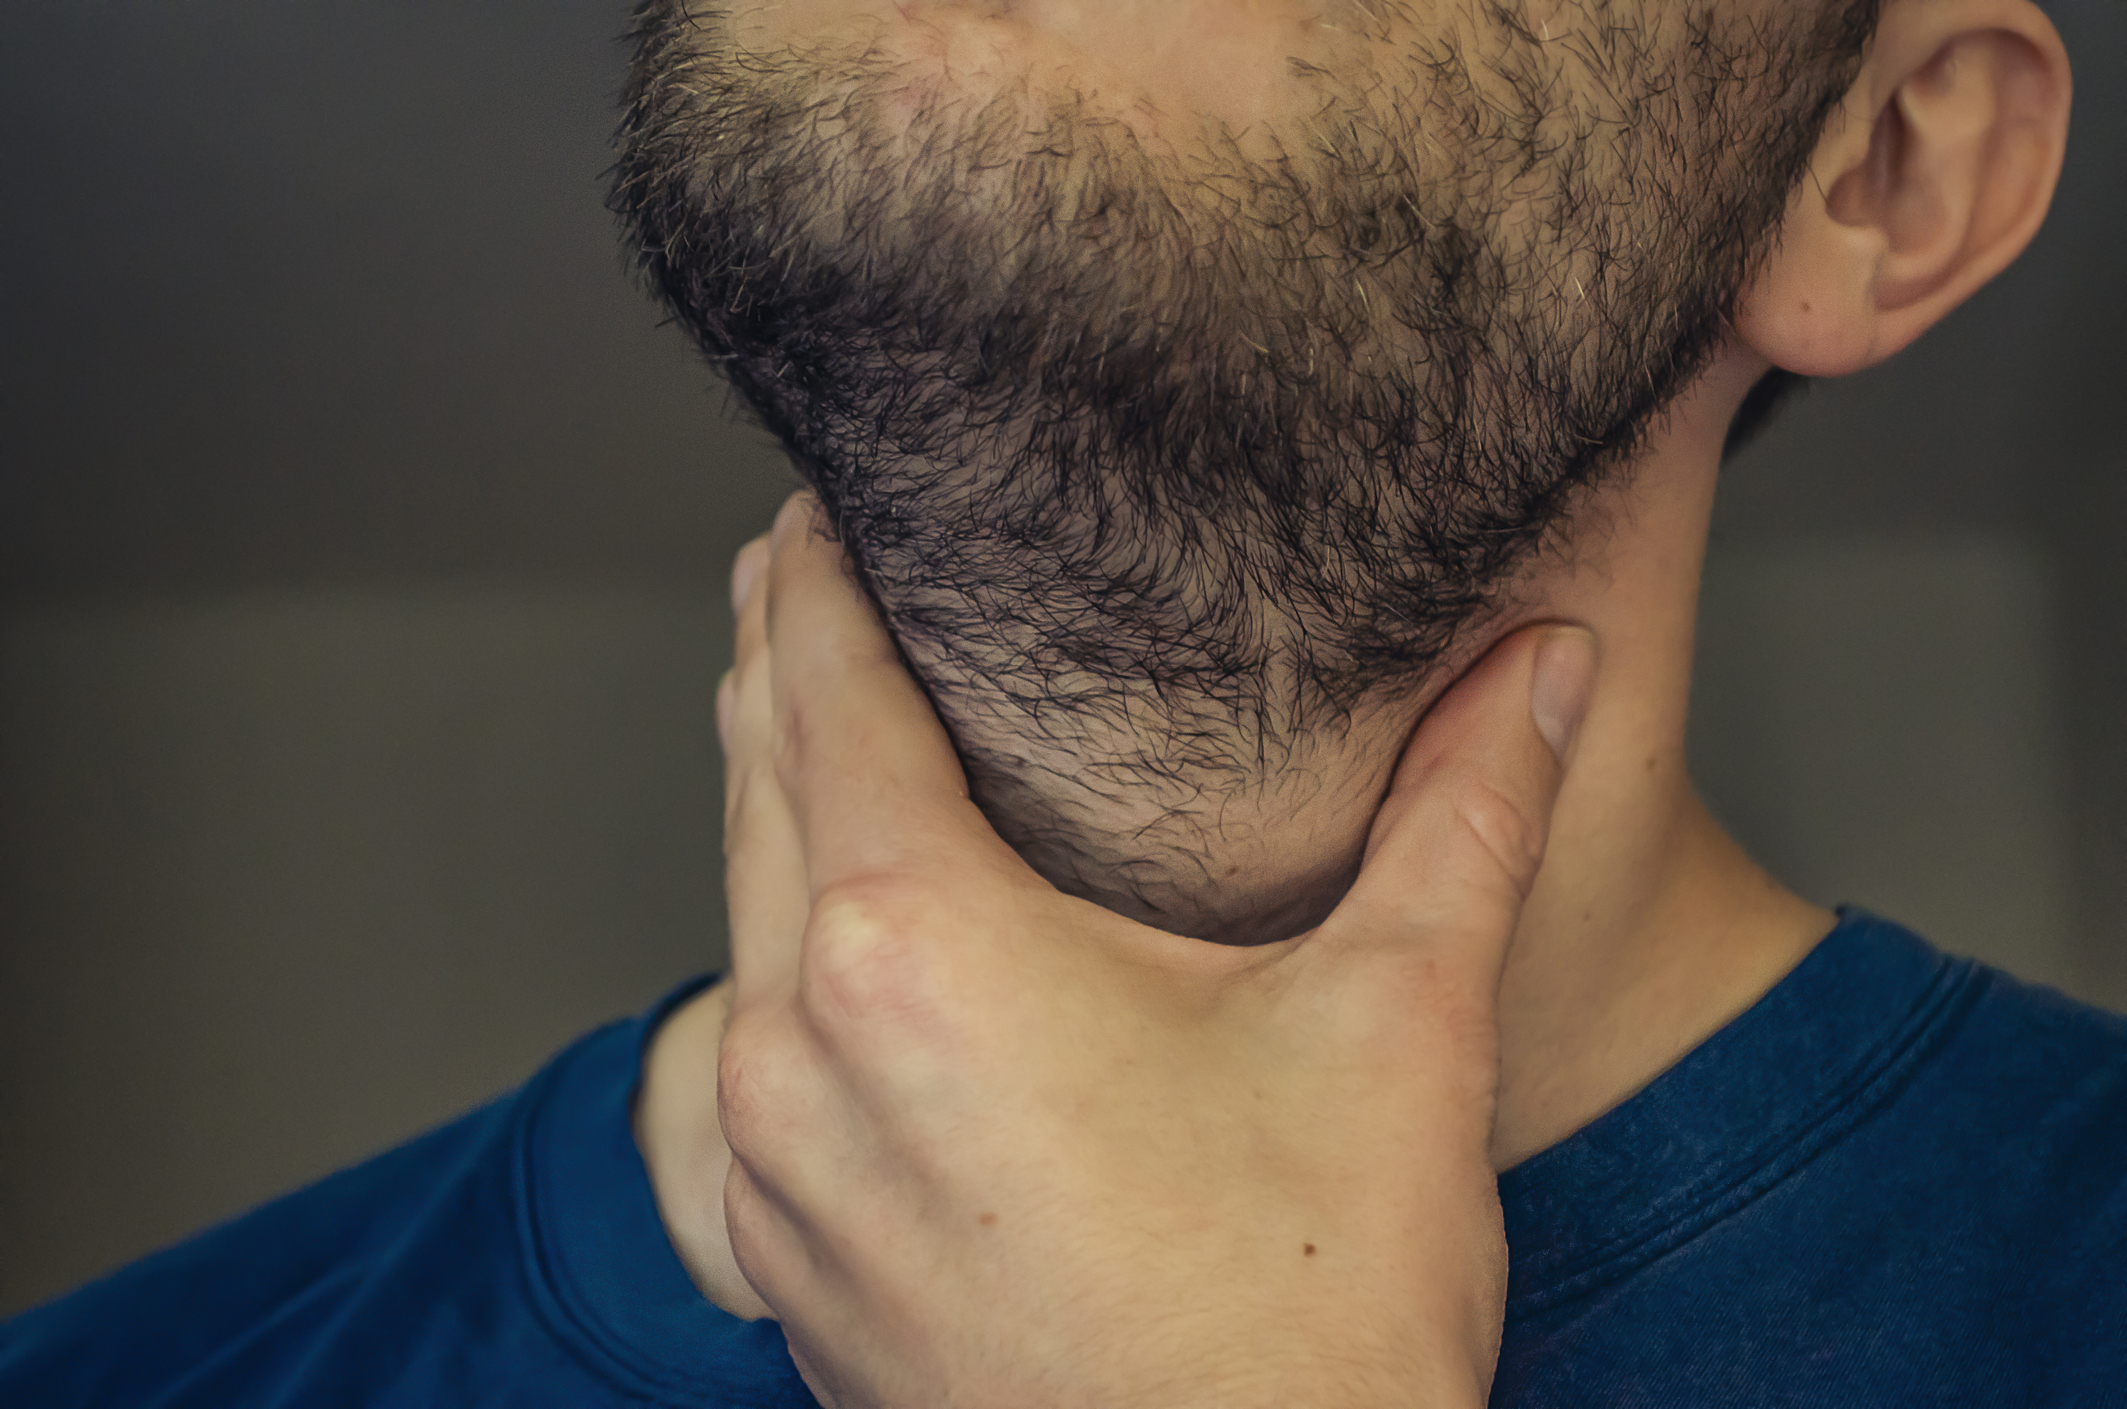 Researchers discover additional glands in the throat: study